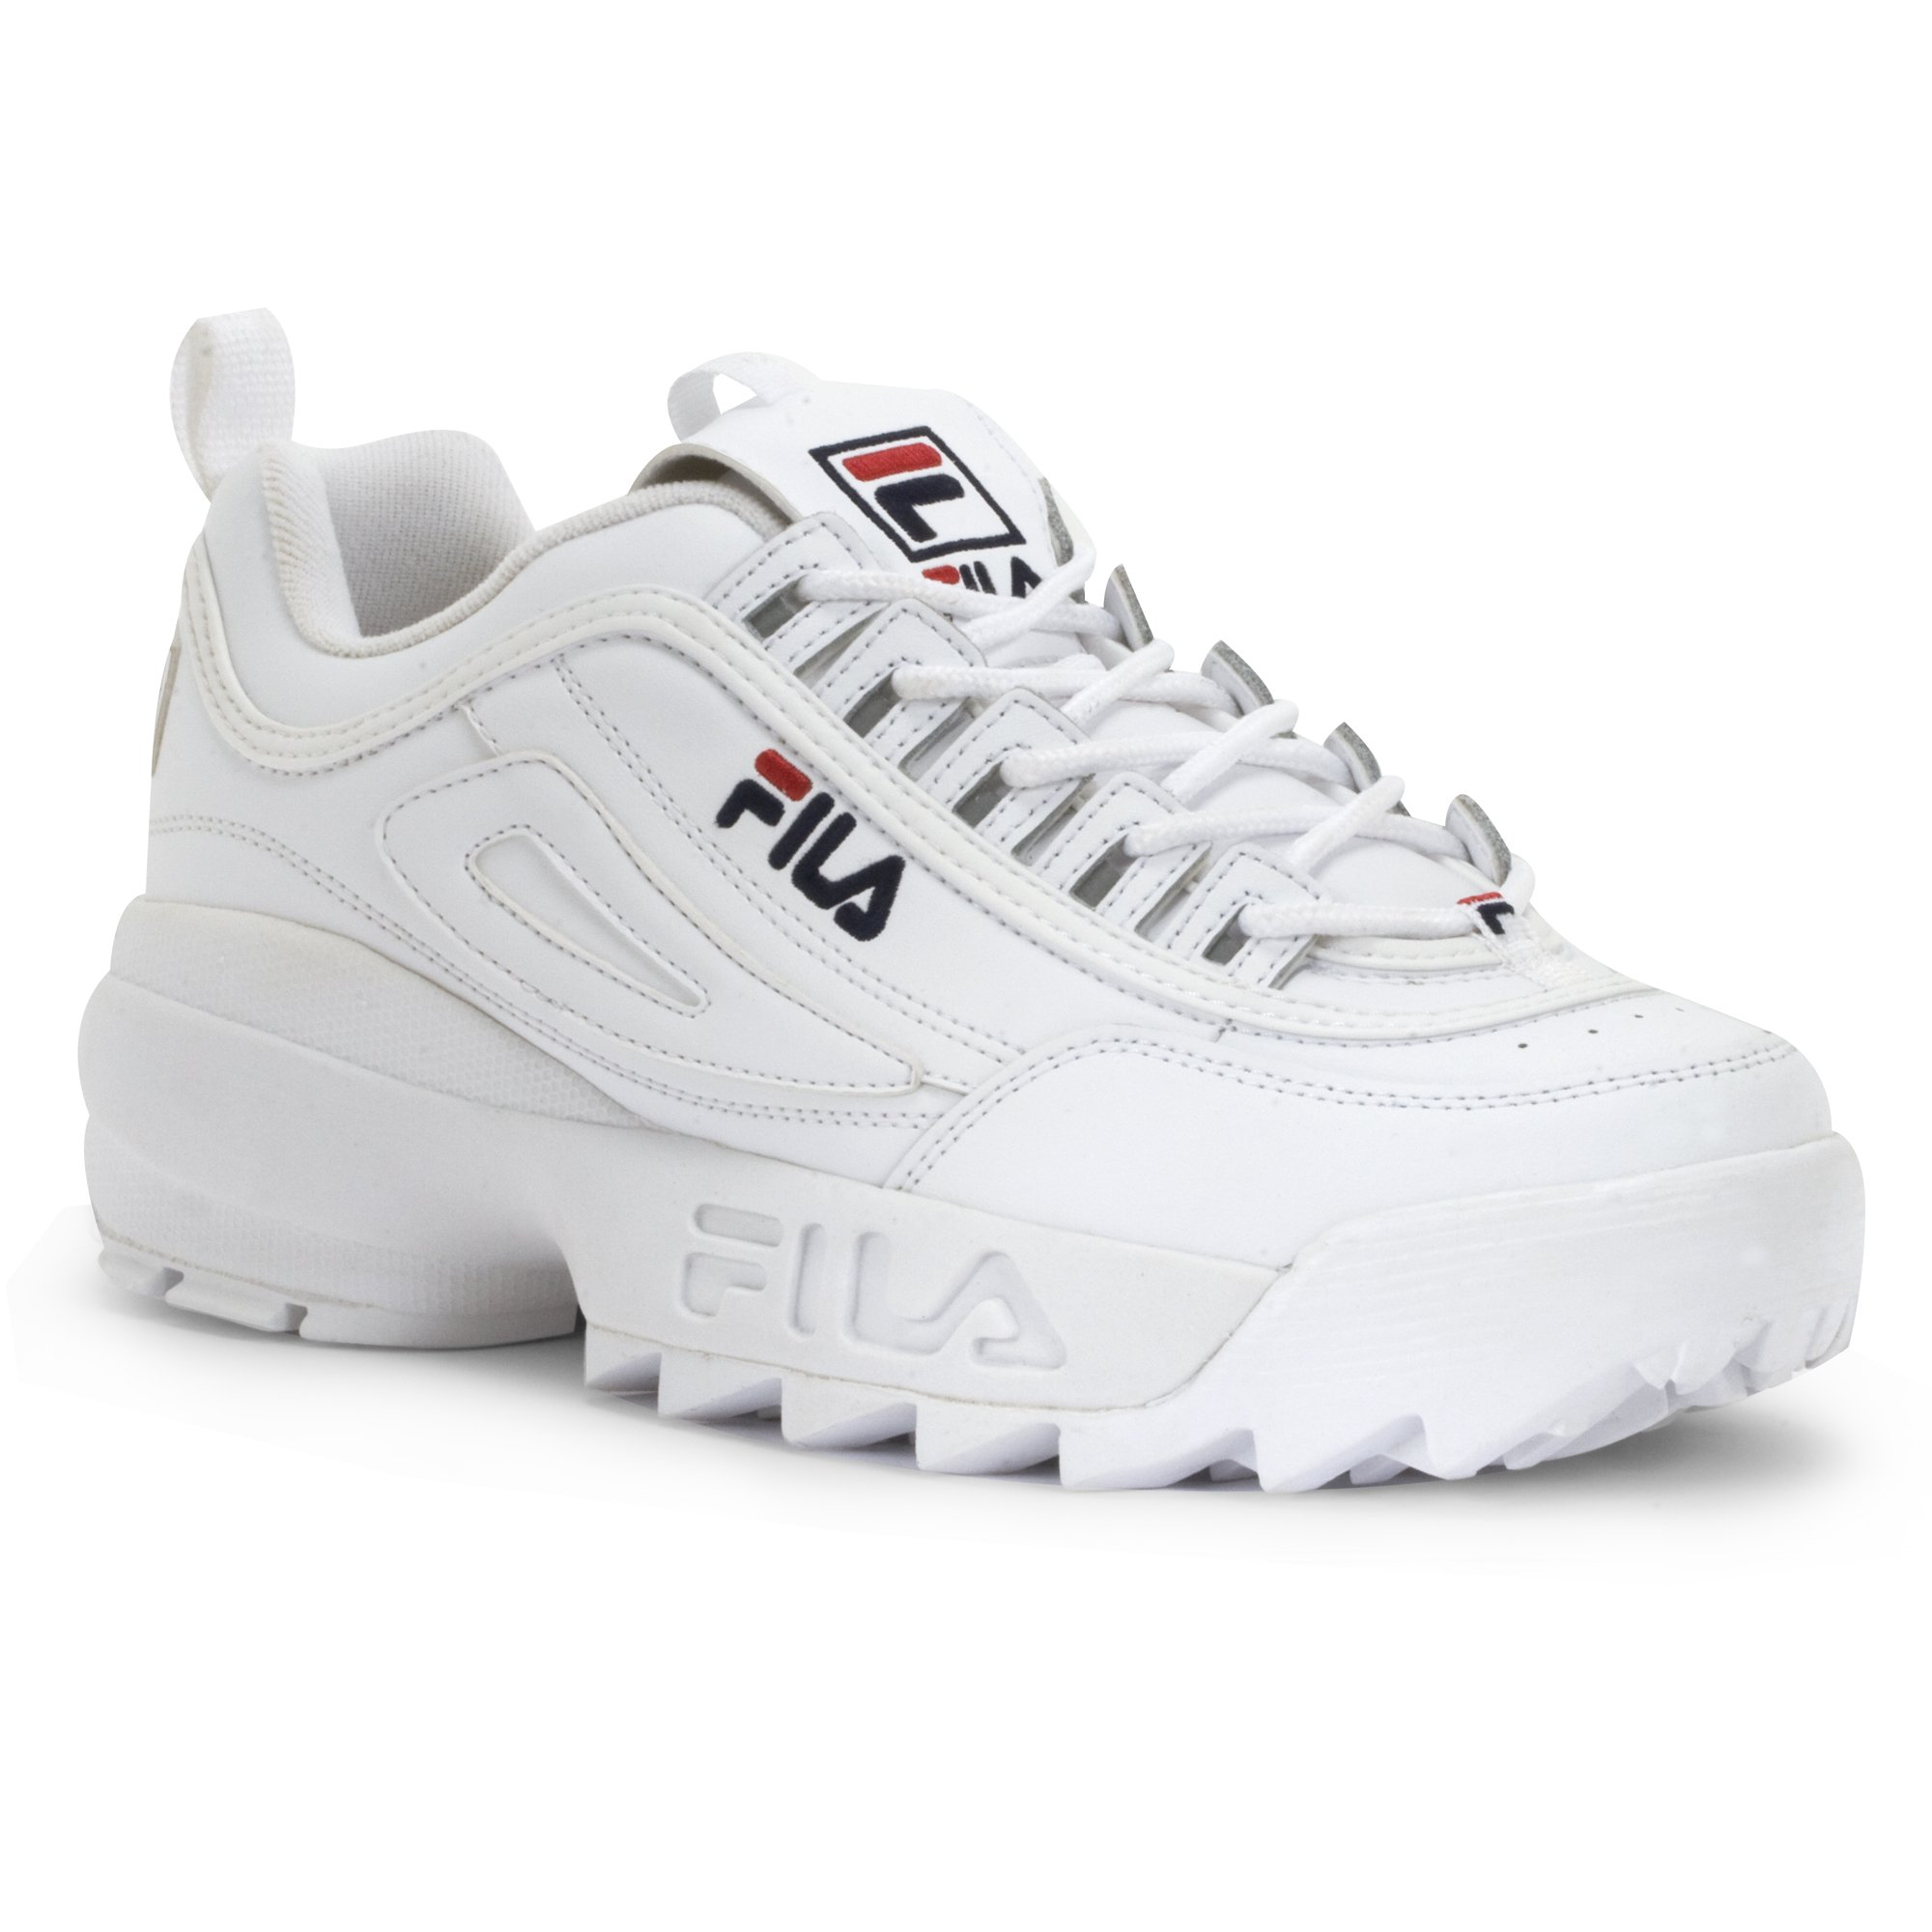 8dcbd6728463 Galleon - Fila Men s Disruptor II Inspired Sneakers White 14 M